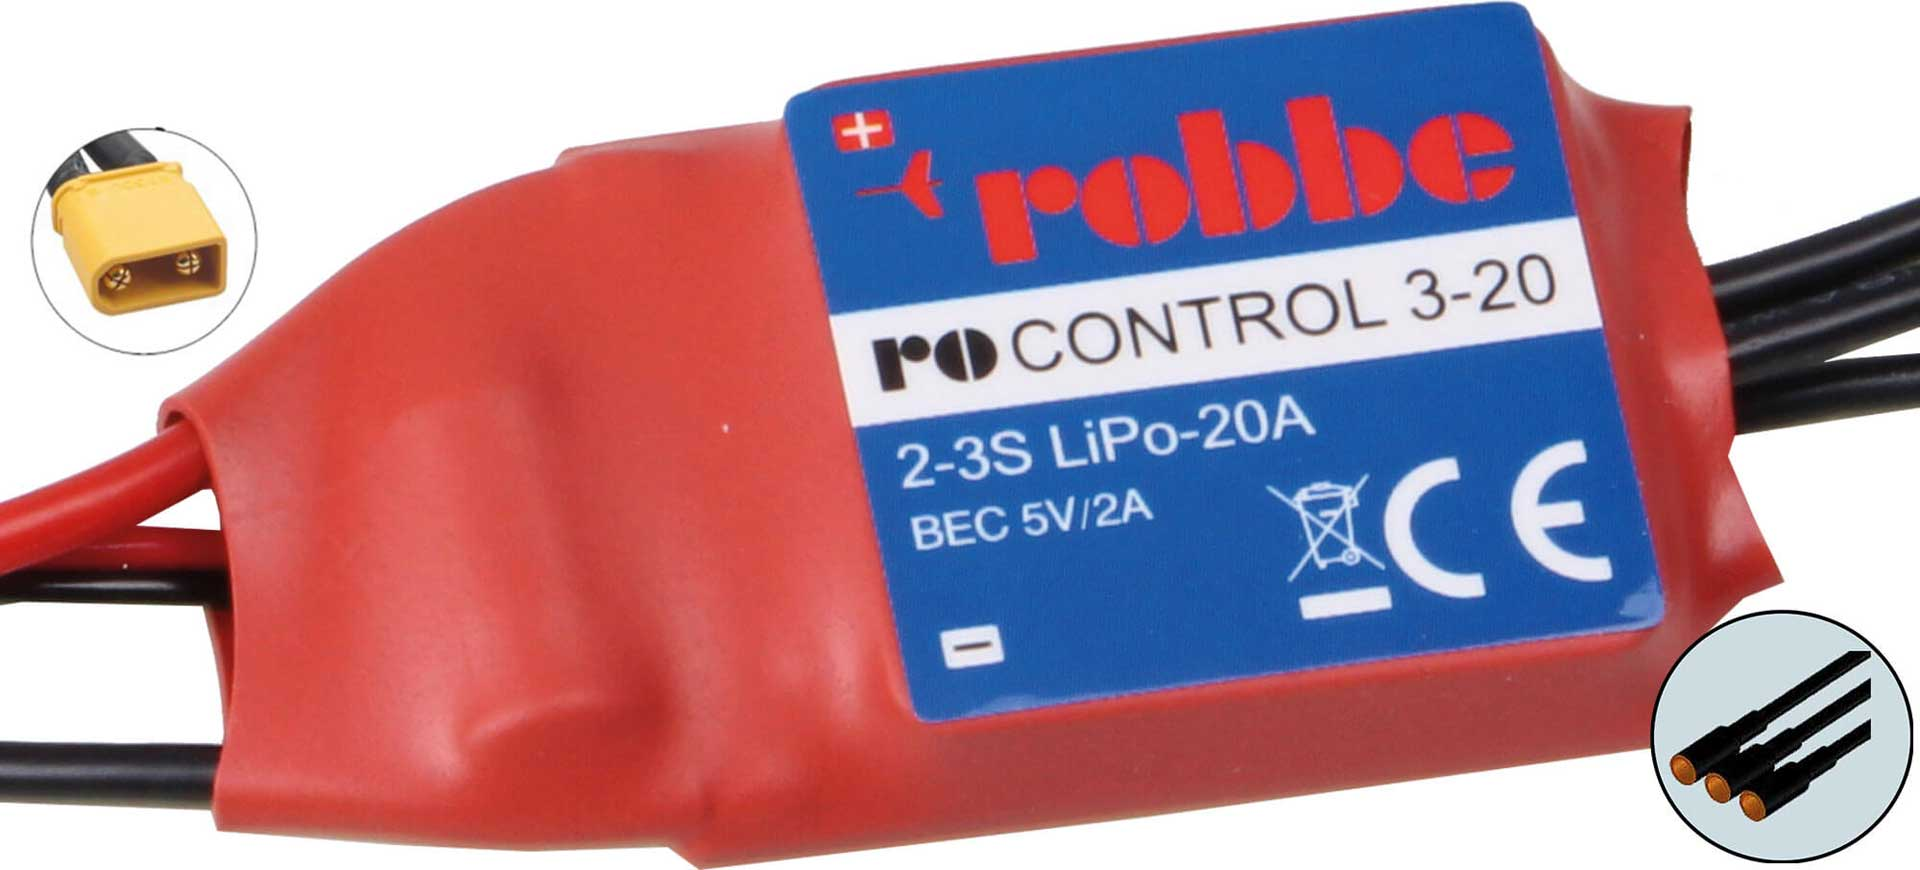 ROBBE RO-CONTROL 4-20 2-4S -20(25)A BRUSHLESS CONTROLLER 5V/2A BEC